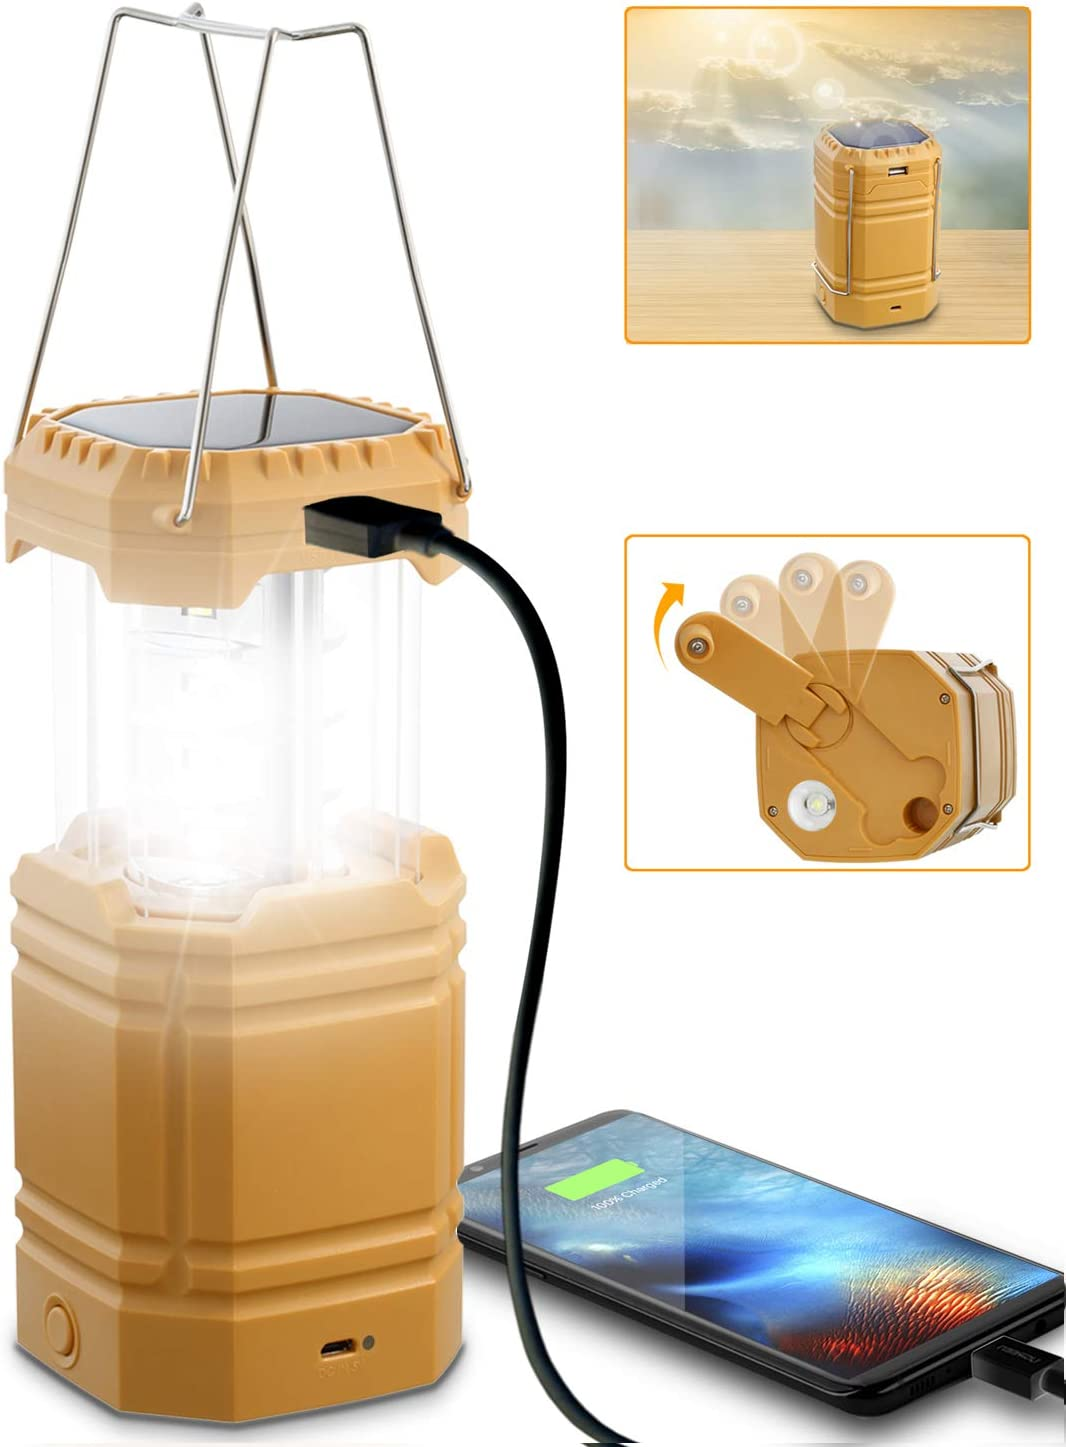 Camping Lantern Solar Hand Crank Powered, Rechargeable LED Lantern Flashlight 3000mAH Power Bank, Waterproof, Long Runtime, Portable Emergency Lantern Camping Light for Home, Outages, Survival Kits